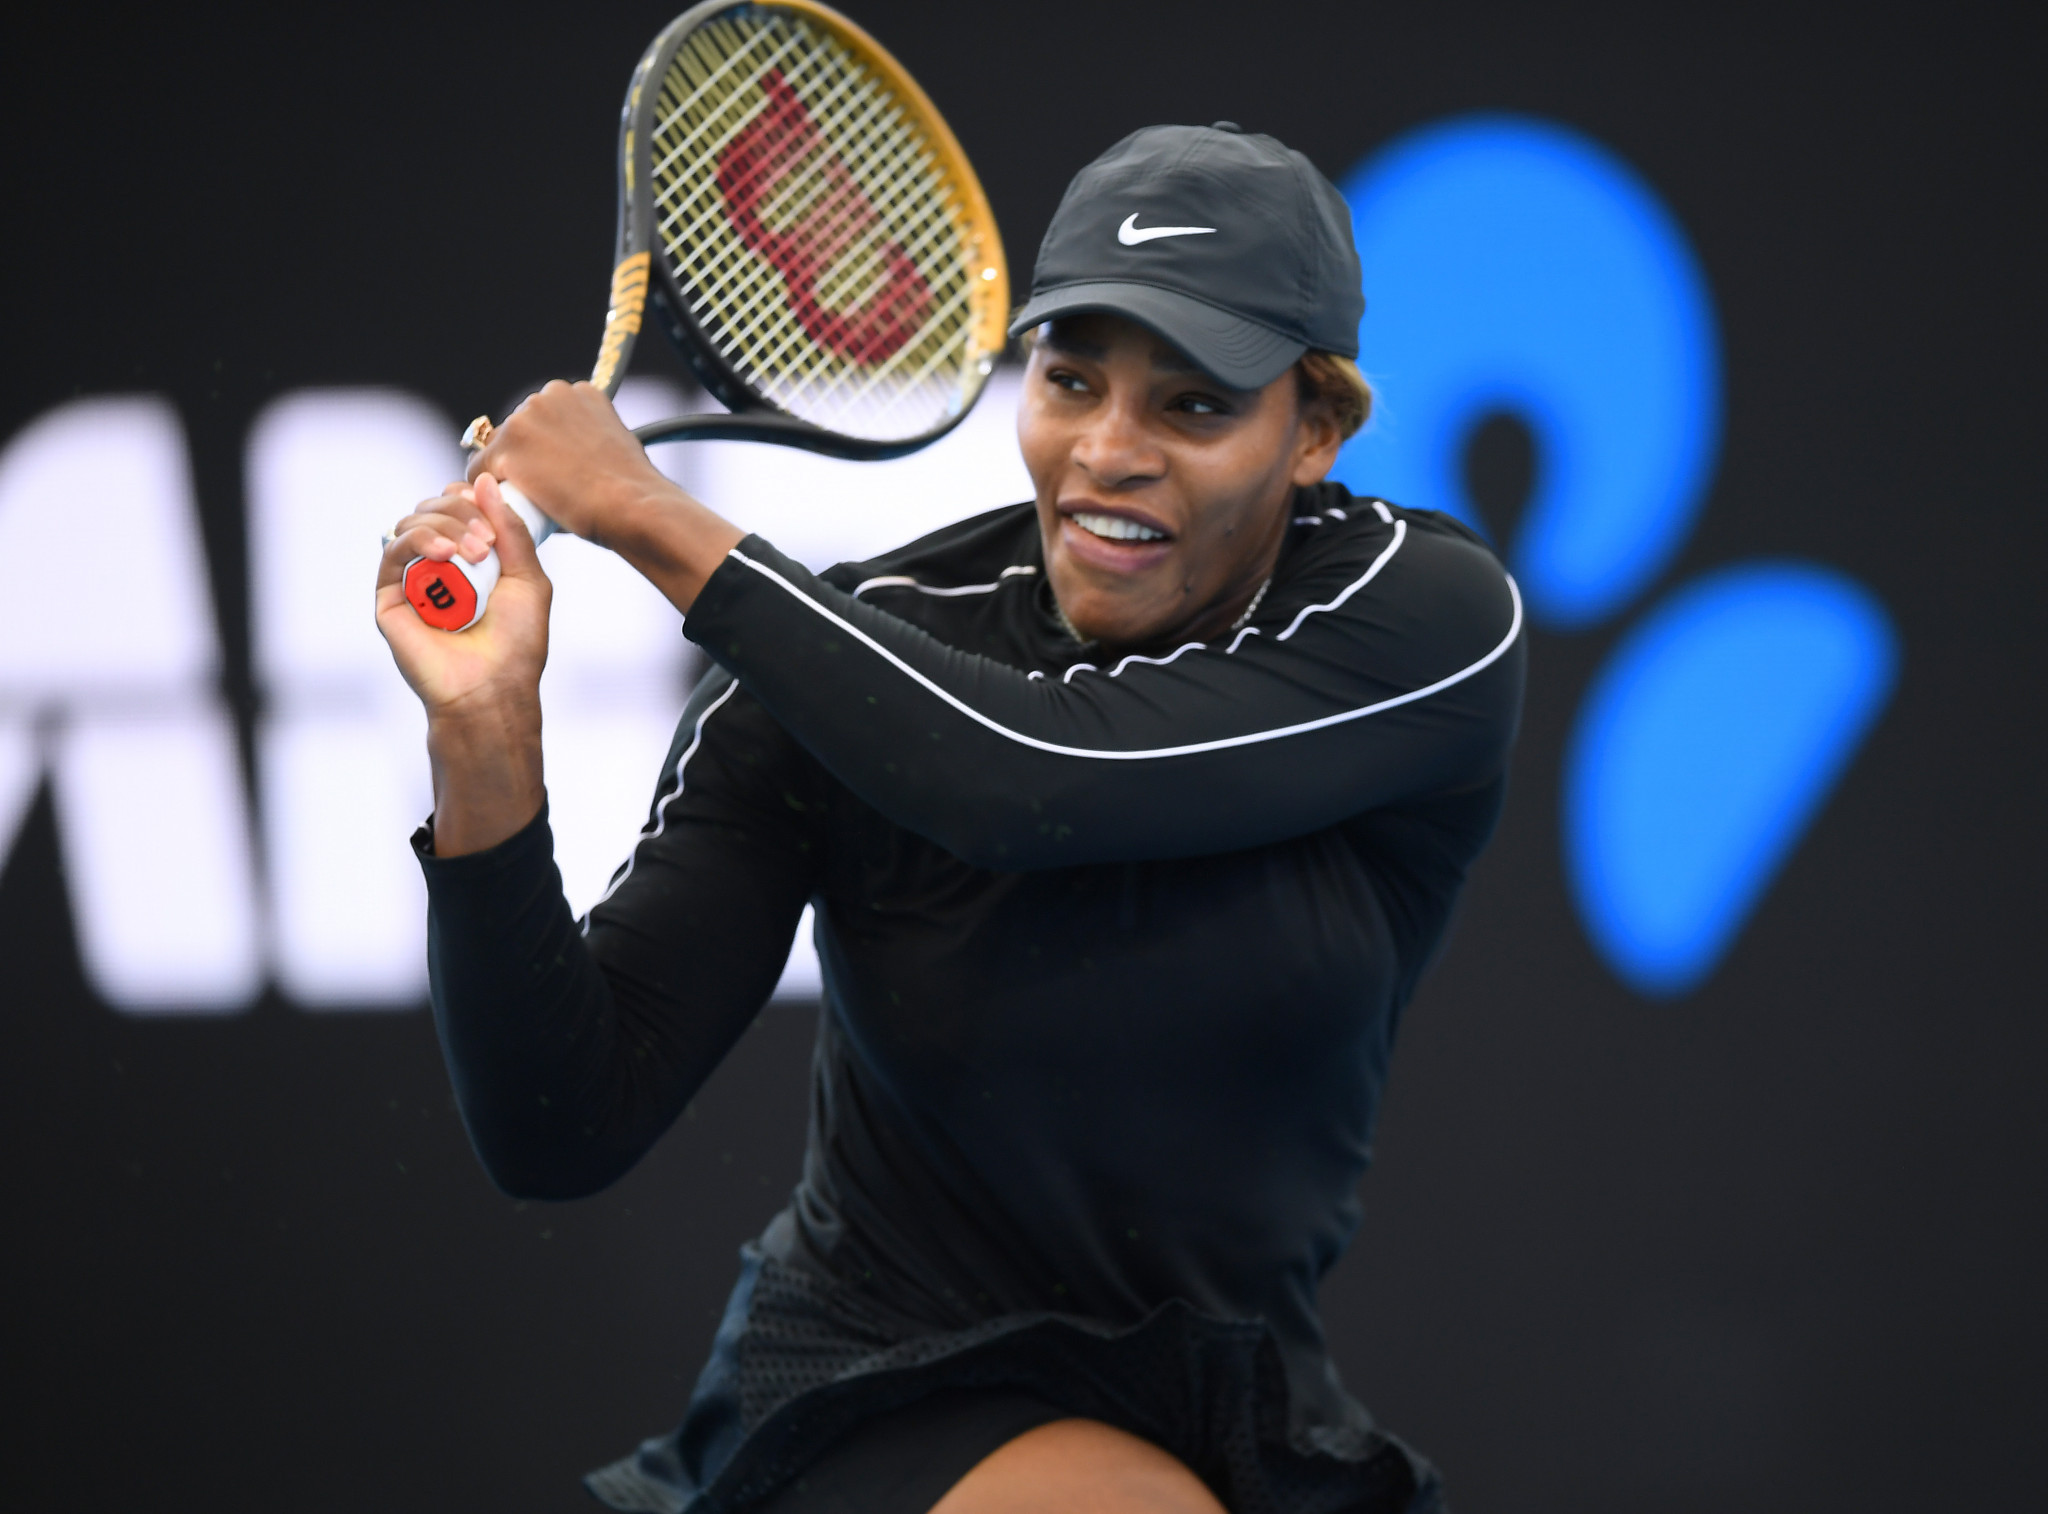 The Seton Hall Sports Poll found that 21 per cent of people would be influenced by a sports professional, like Serena Williams, when considering having a COVID-19 vaccine ©Getty Images